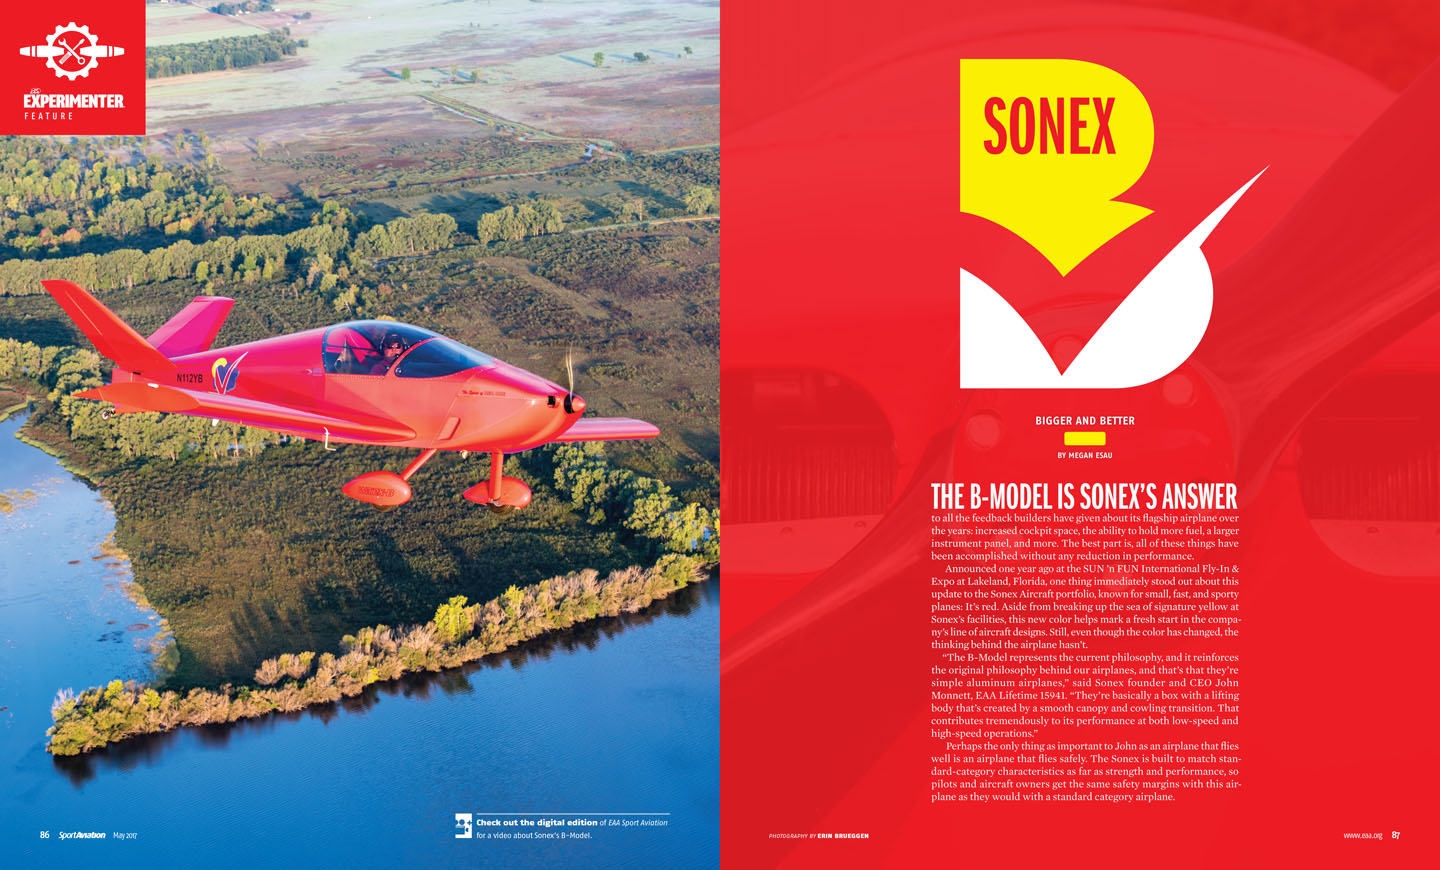 The Sonex B Kit Aircraft Aviation Knee Key Systems Wiring Diagram Sport May 2017 Model Feature